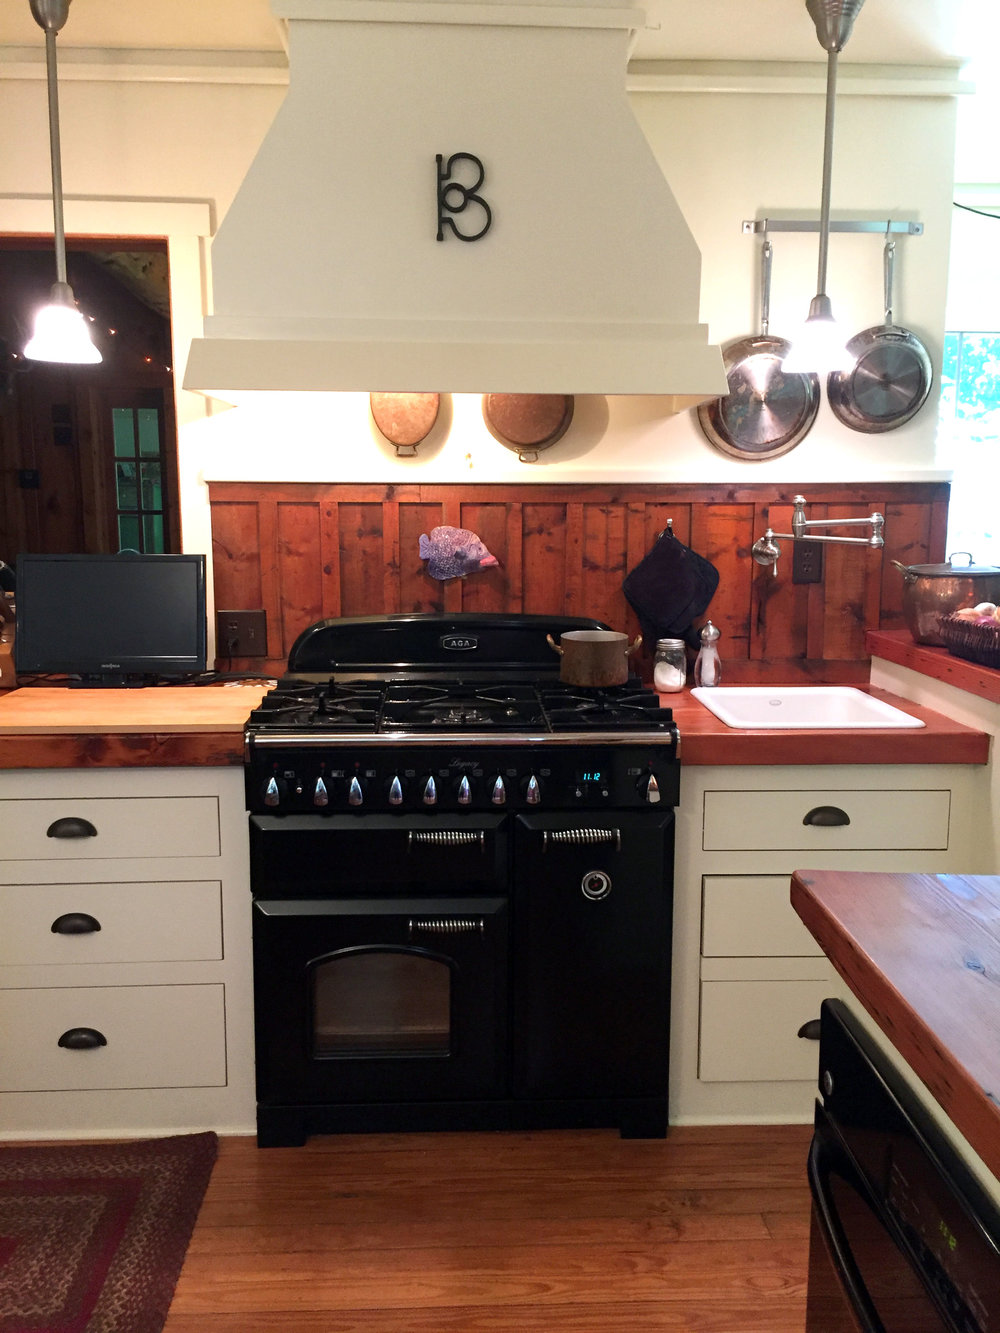 Aga stove and the Circle B